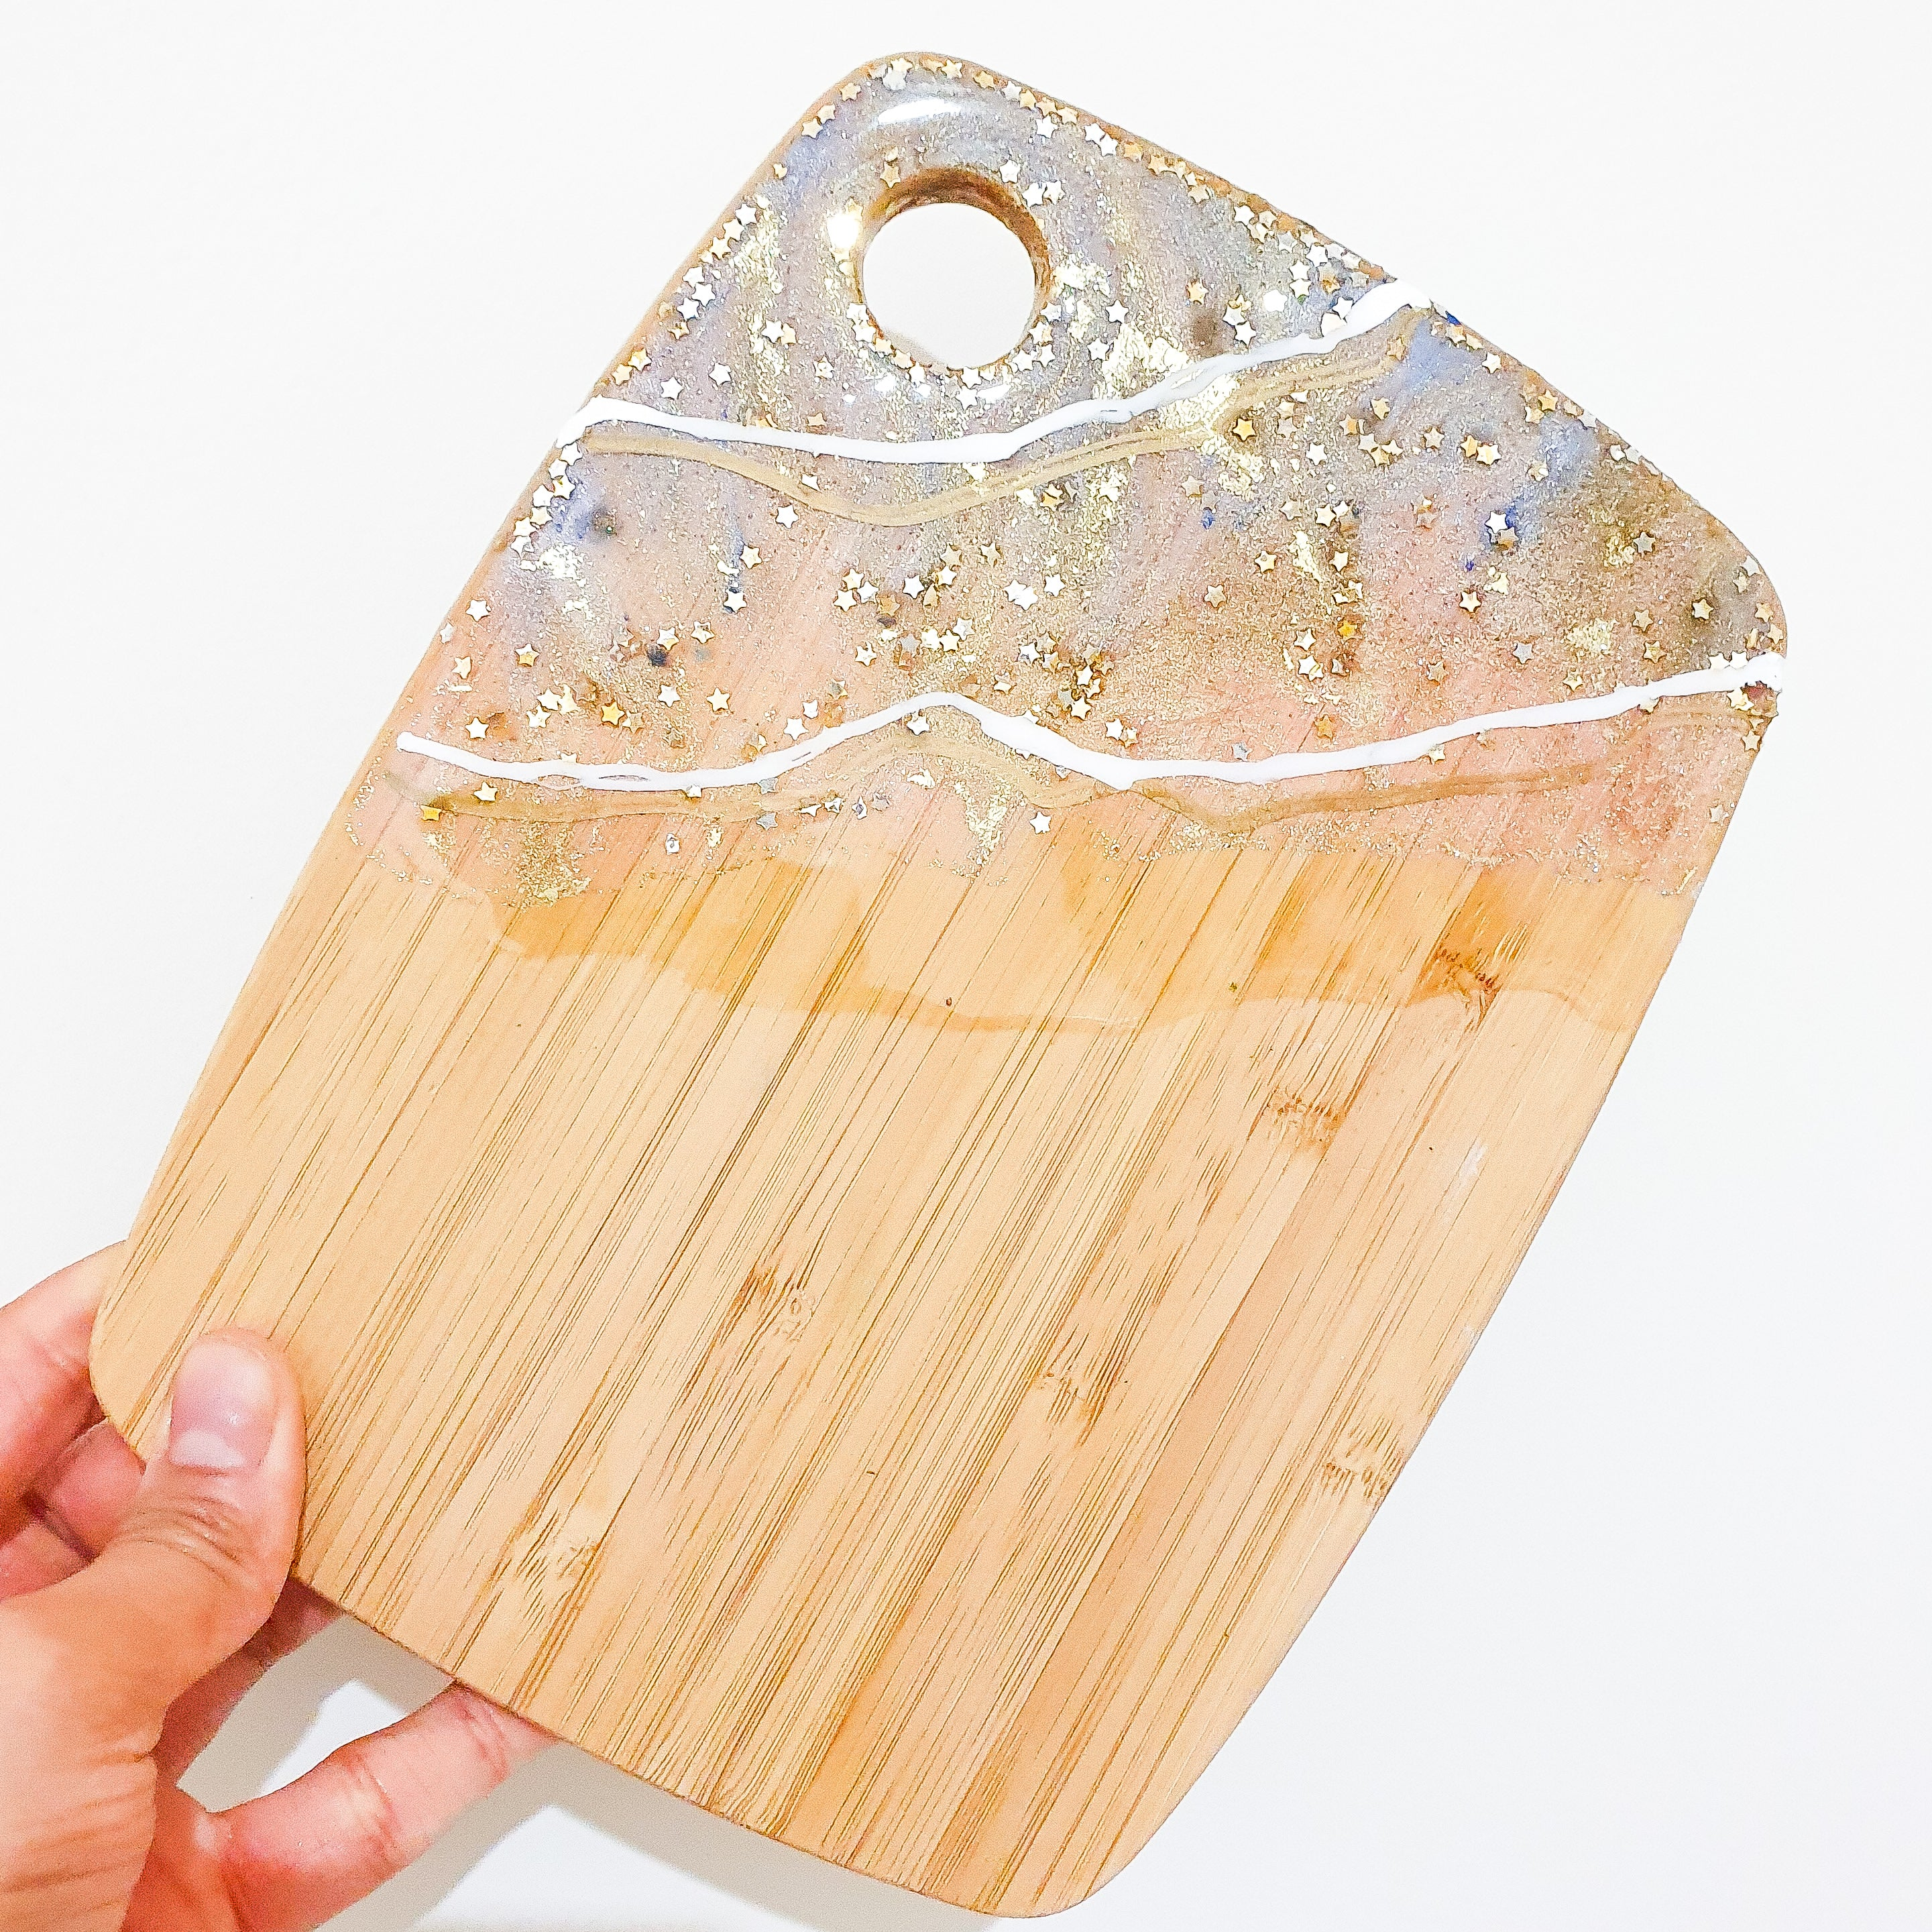 Lux styled cheese board- Small + 2 resin coasters